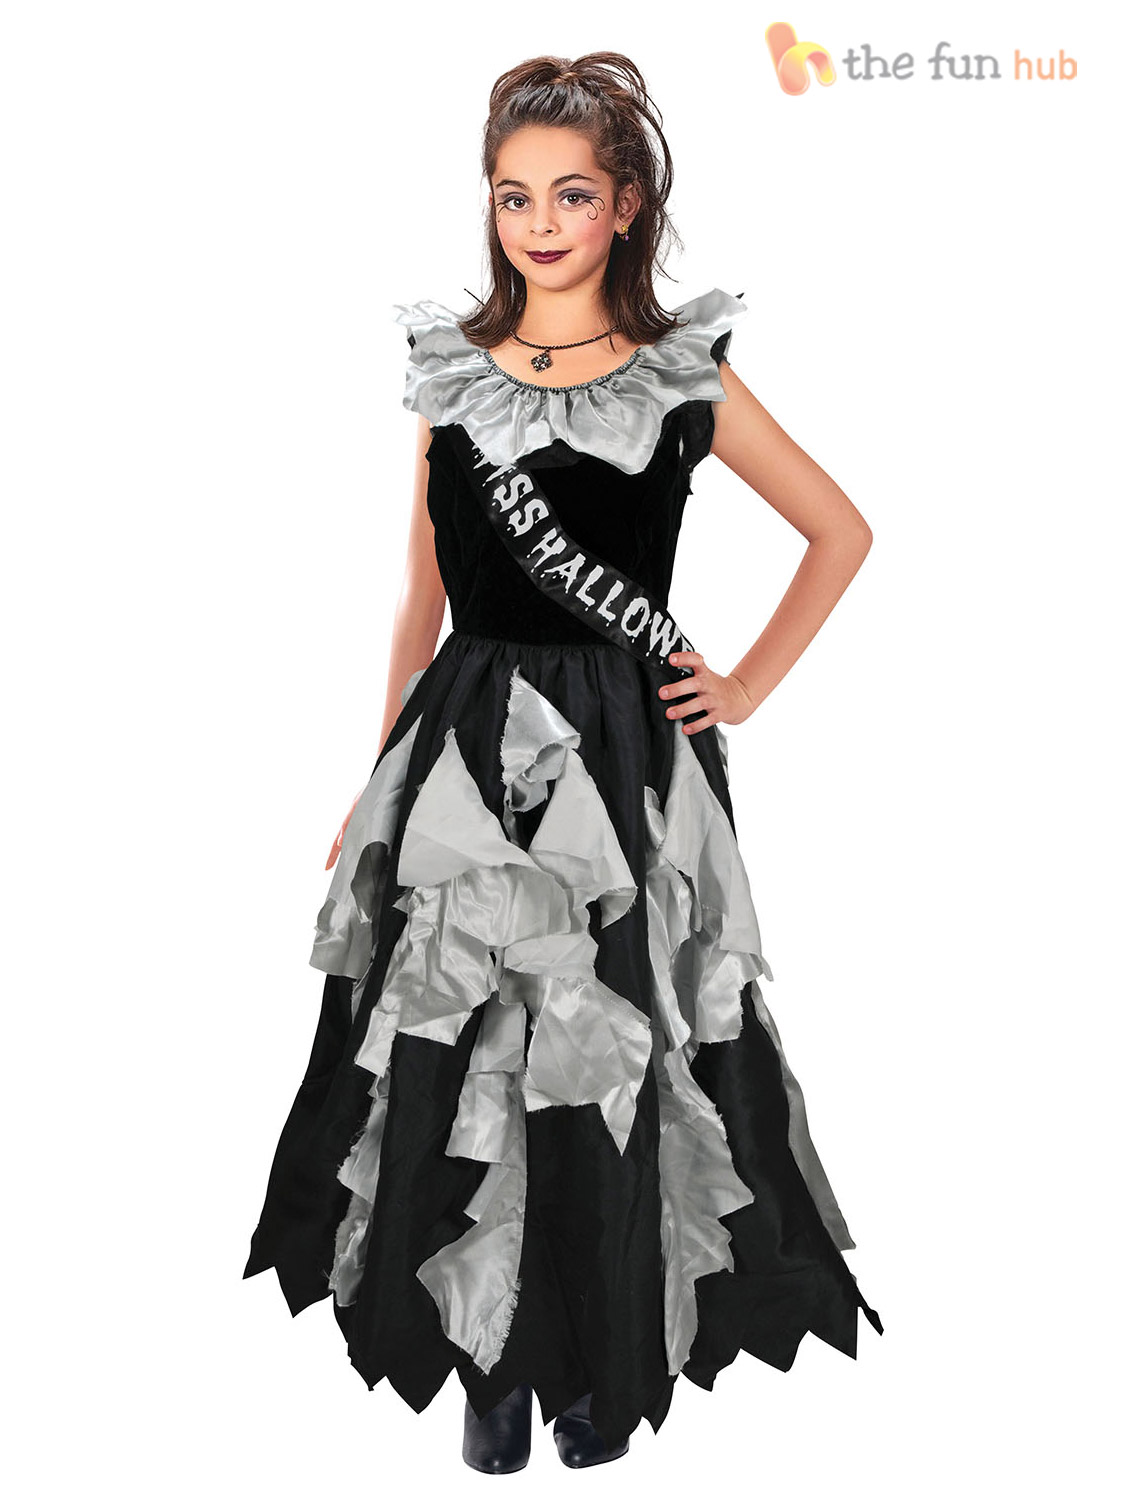 age 813 girls zombie school prom queen teen halloween